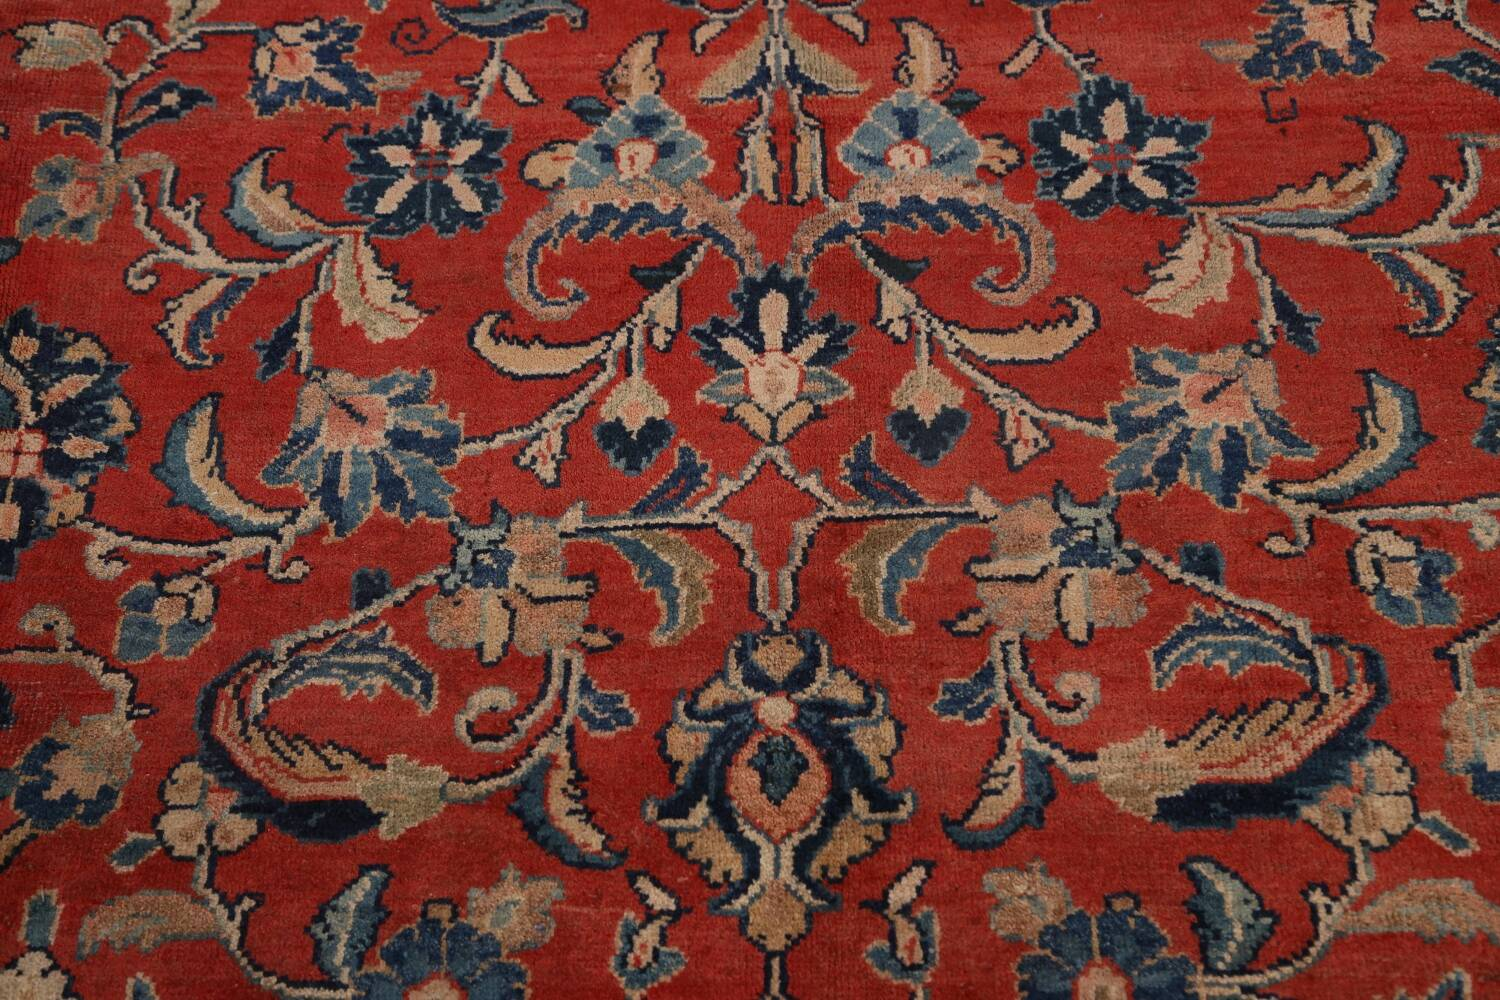 Antique Floral Mahal Persian Area Rug 10x14 image 11